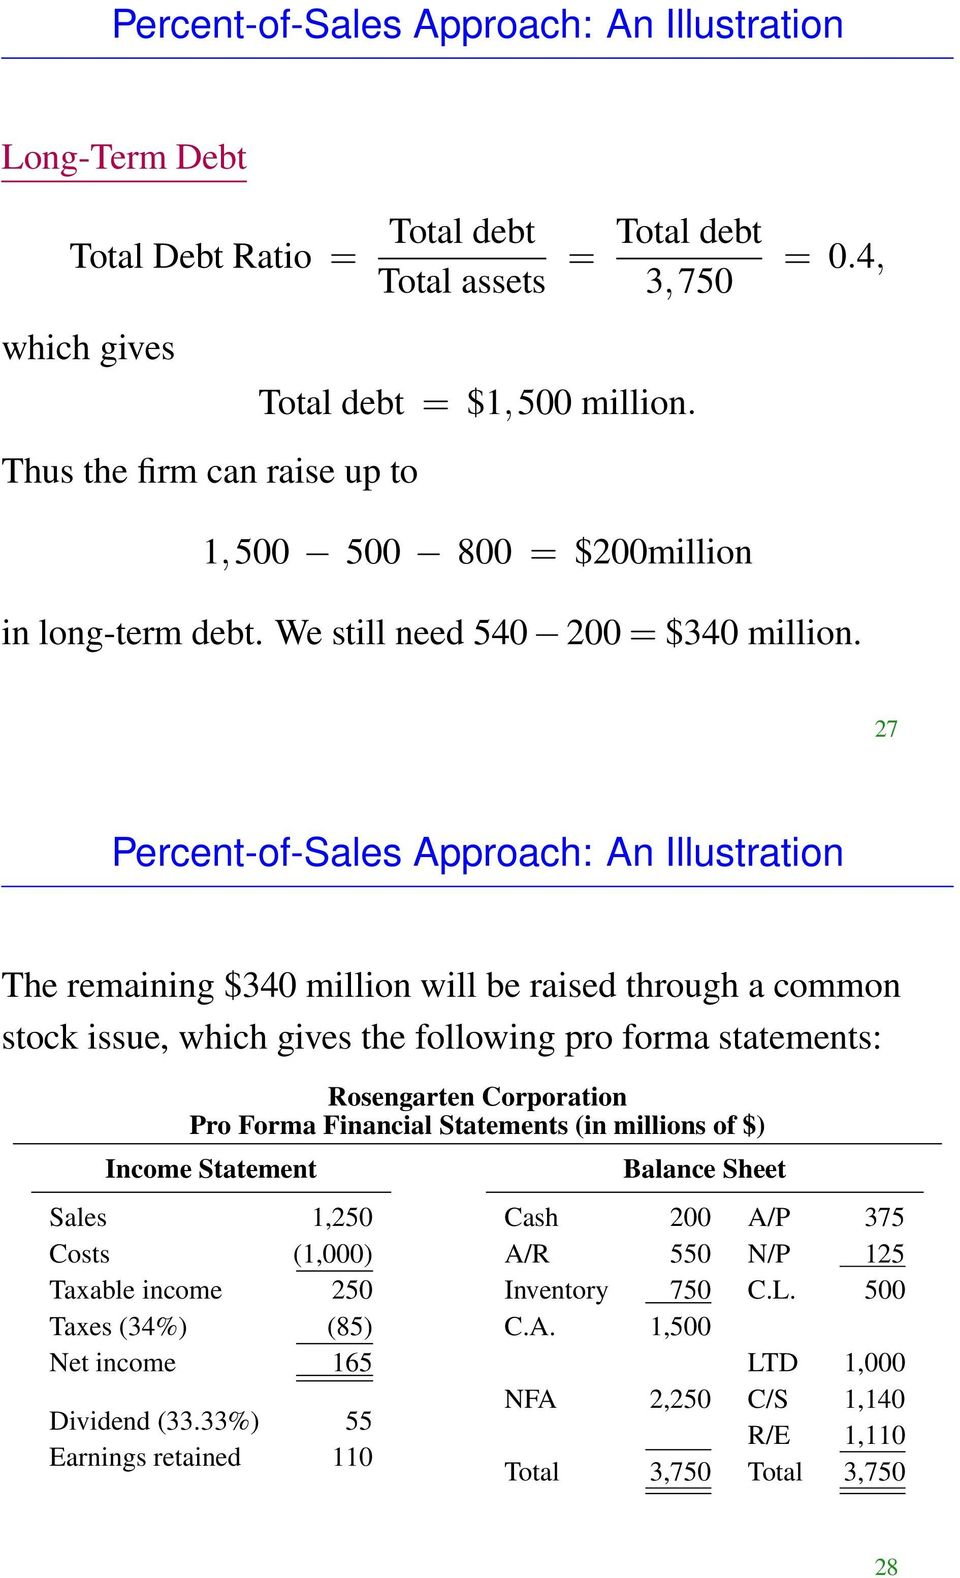 27 Percent-of-Sales Approach: An Illustration The remaining $340 million will be raised through a common stock issue, which gives the following pro forma statements: Rosengarten Corporation Pro Forma